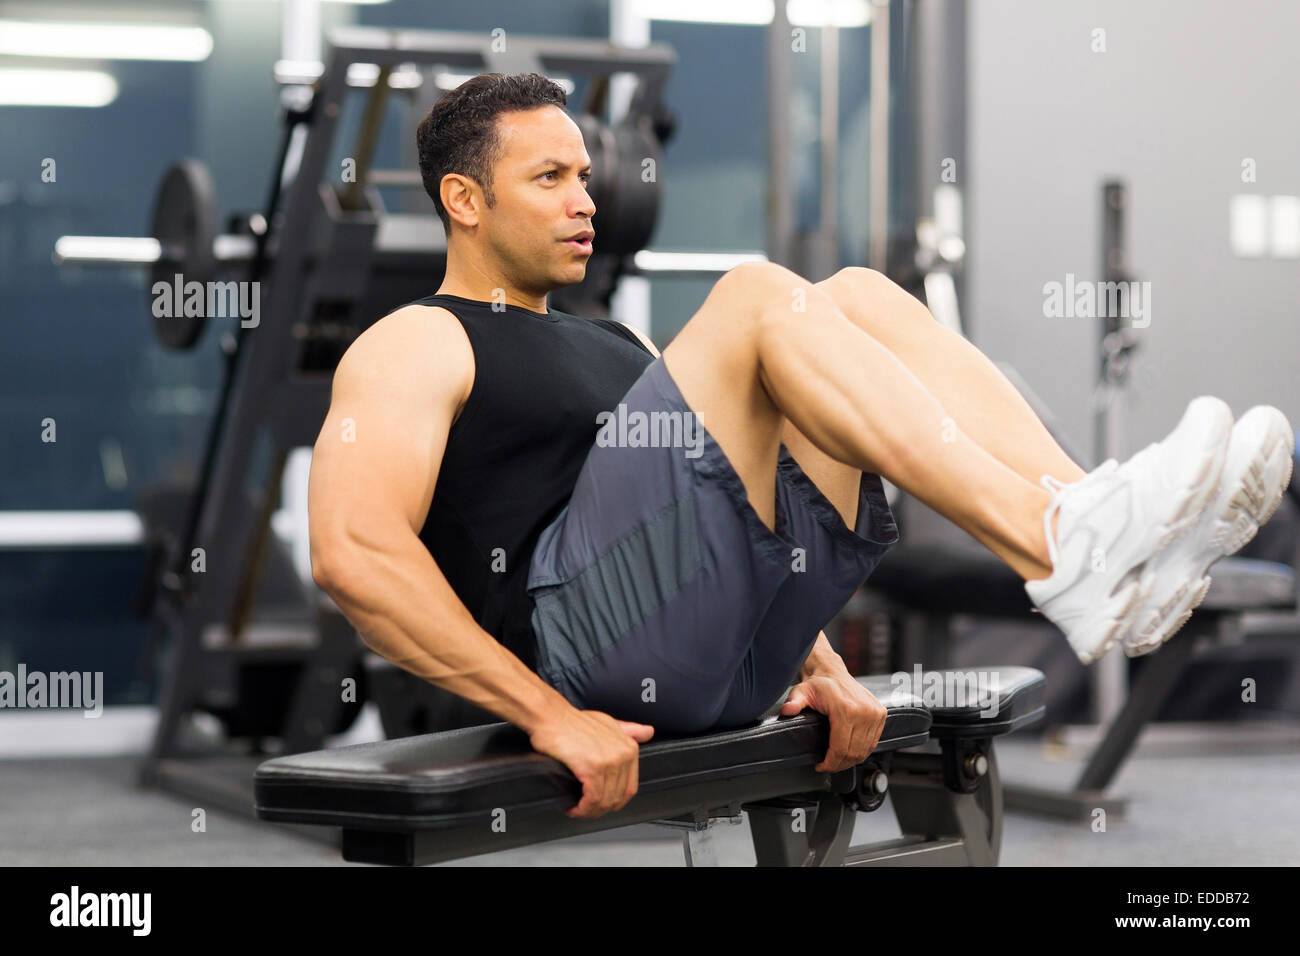 muscular man working out in gym - Stock Image